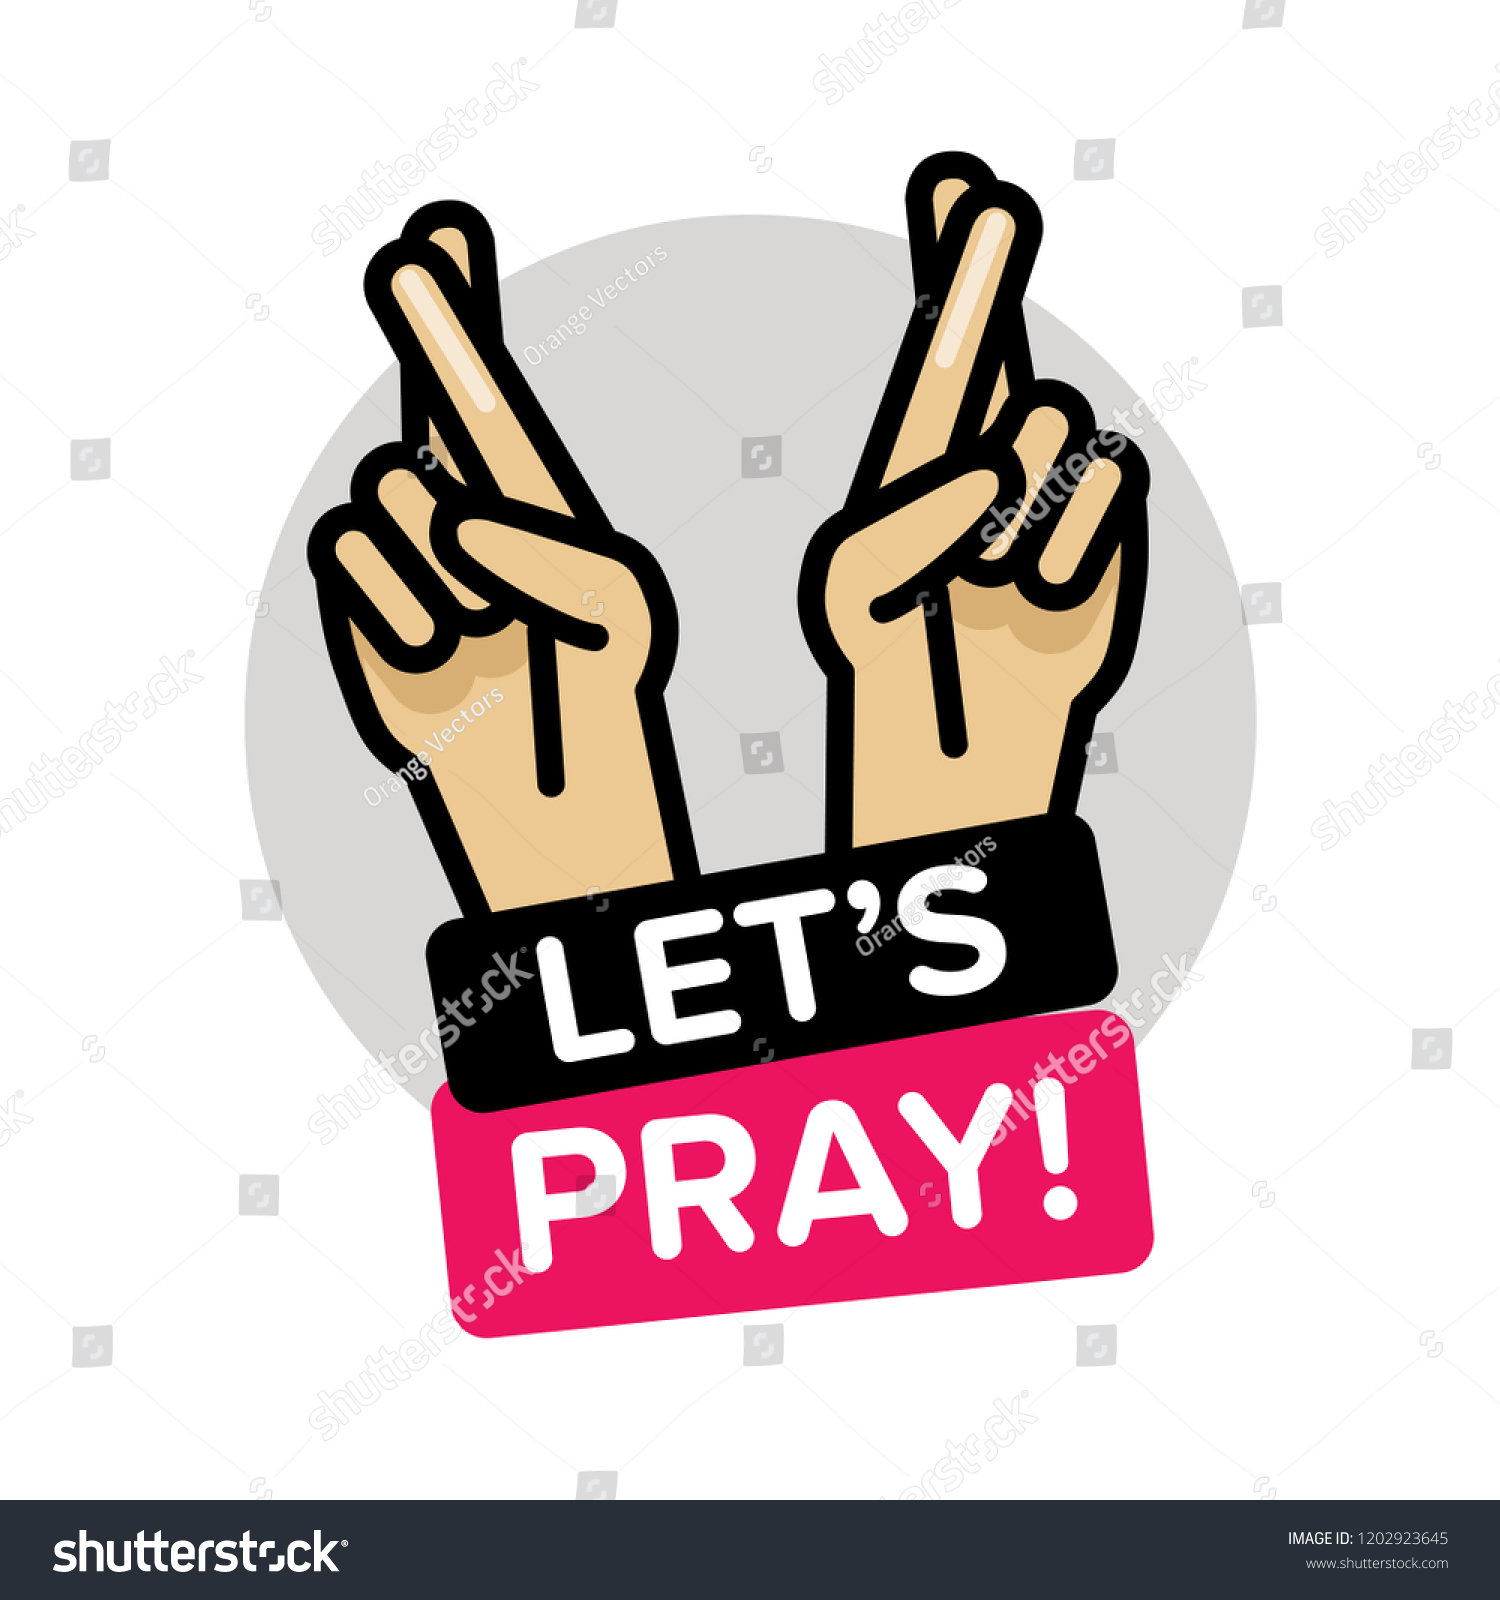 Let's Pray Fingers Crossed Vector Illustration